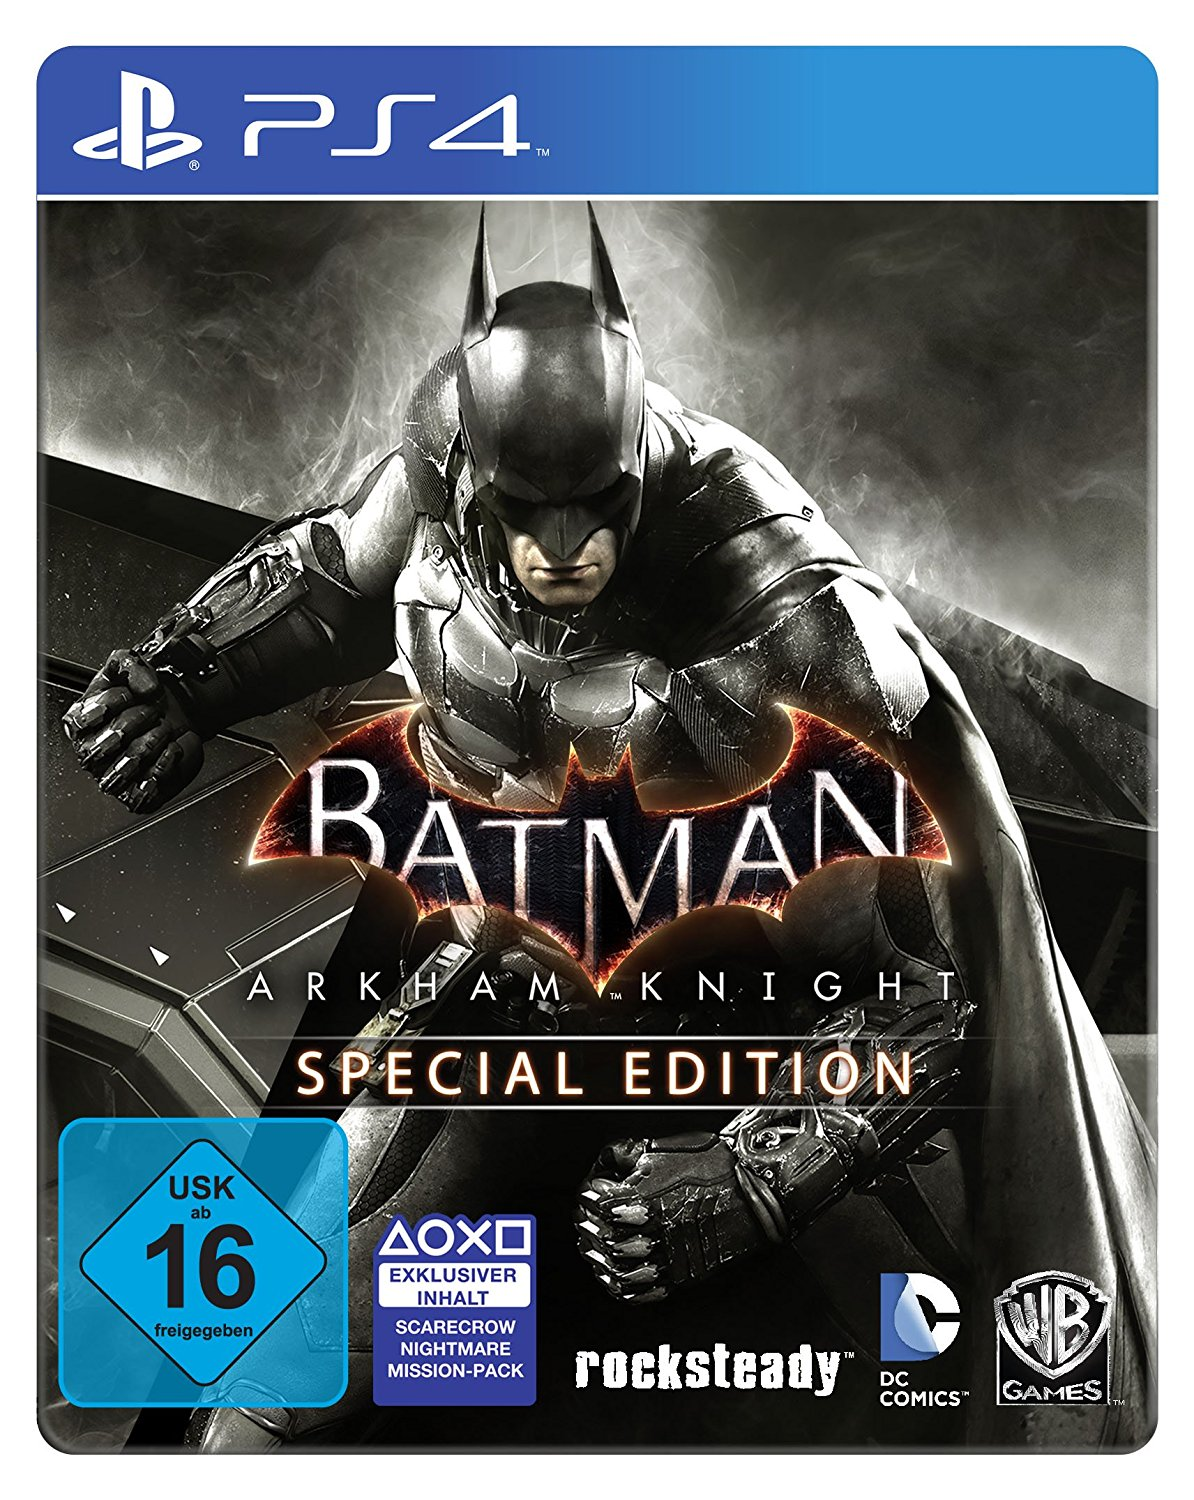 Batman Arkham Knight Special Edition (Steelbook)